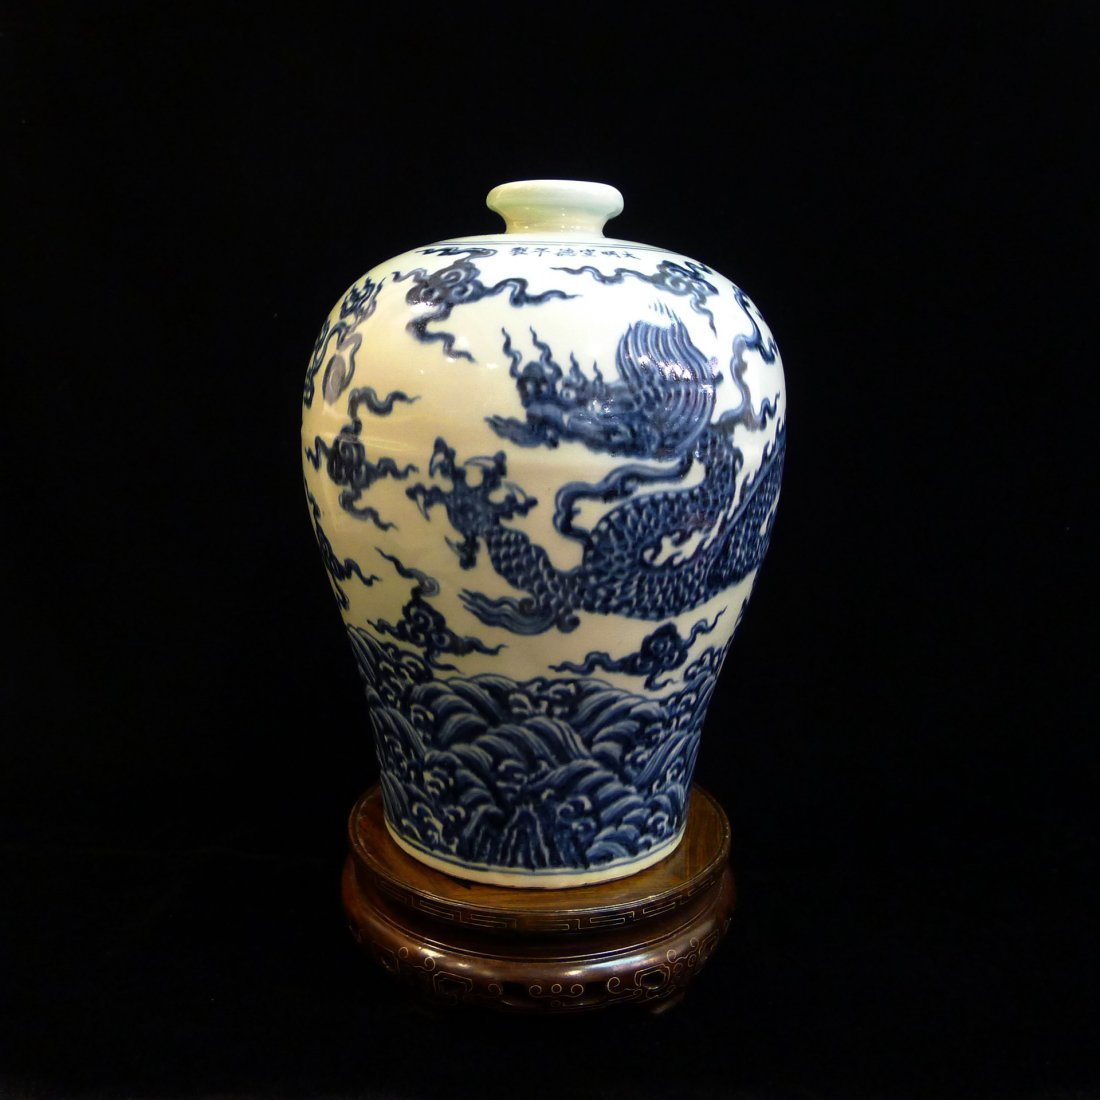 MING DYNASTY XUANDE YEARS GUANYIN BOTTLE